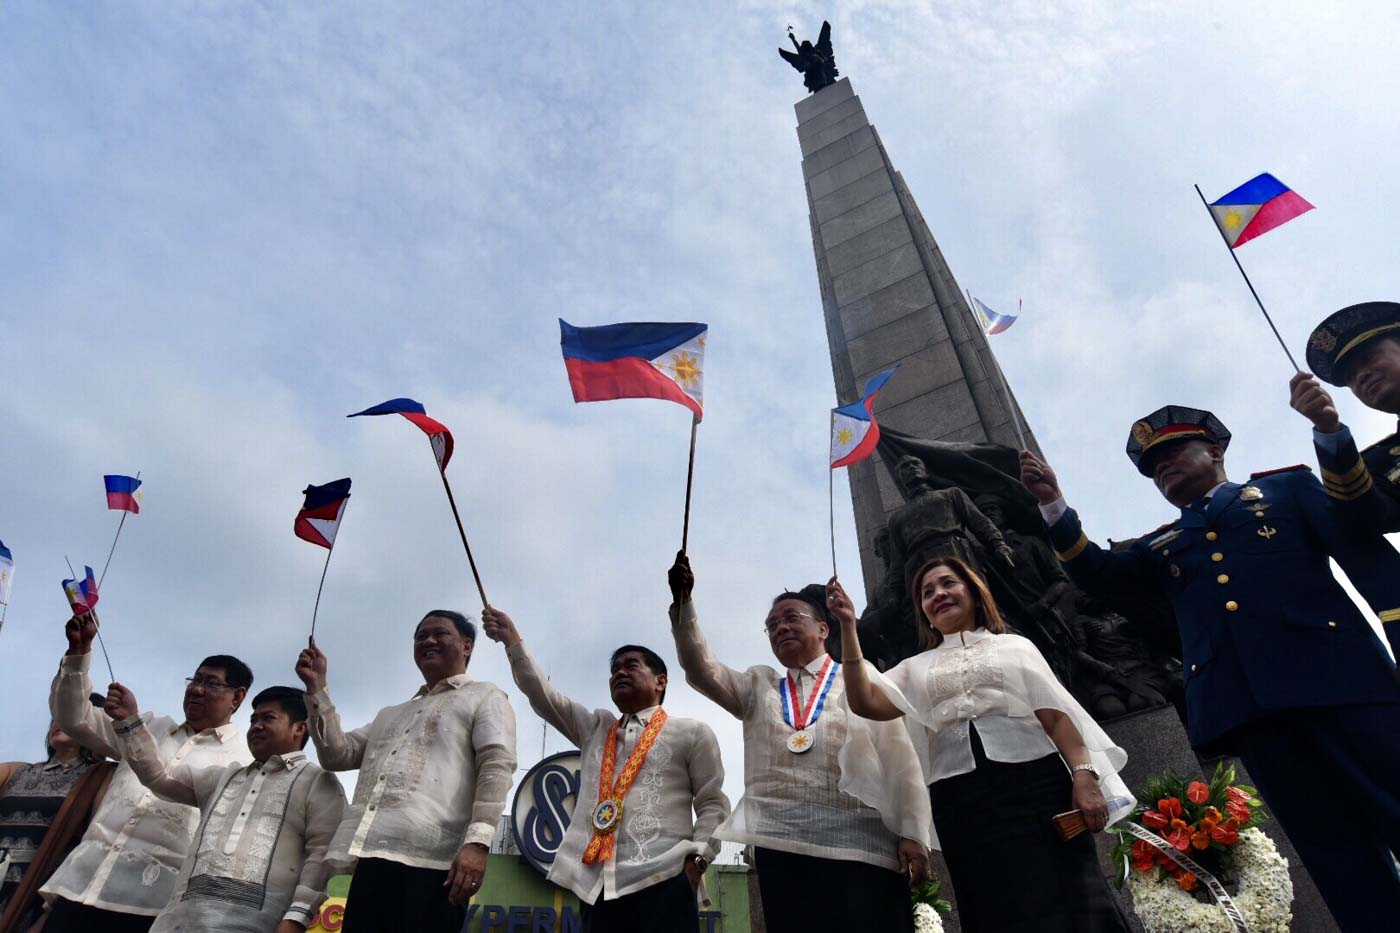 CALOOCAN CITY. Supreme Court Chief Justice Lucas Bersamin, right, led the flag raising ceremonies at the Bonifacio Monument in Caloocan City. With him are Caloocan City Mayor Oscar Malapitan and Vice Mayor Macario Asistio III and other local officials. June 12, 2019. Photo by Angie de Silva/Rappler